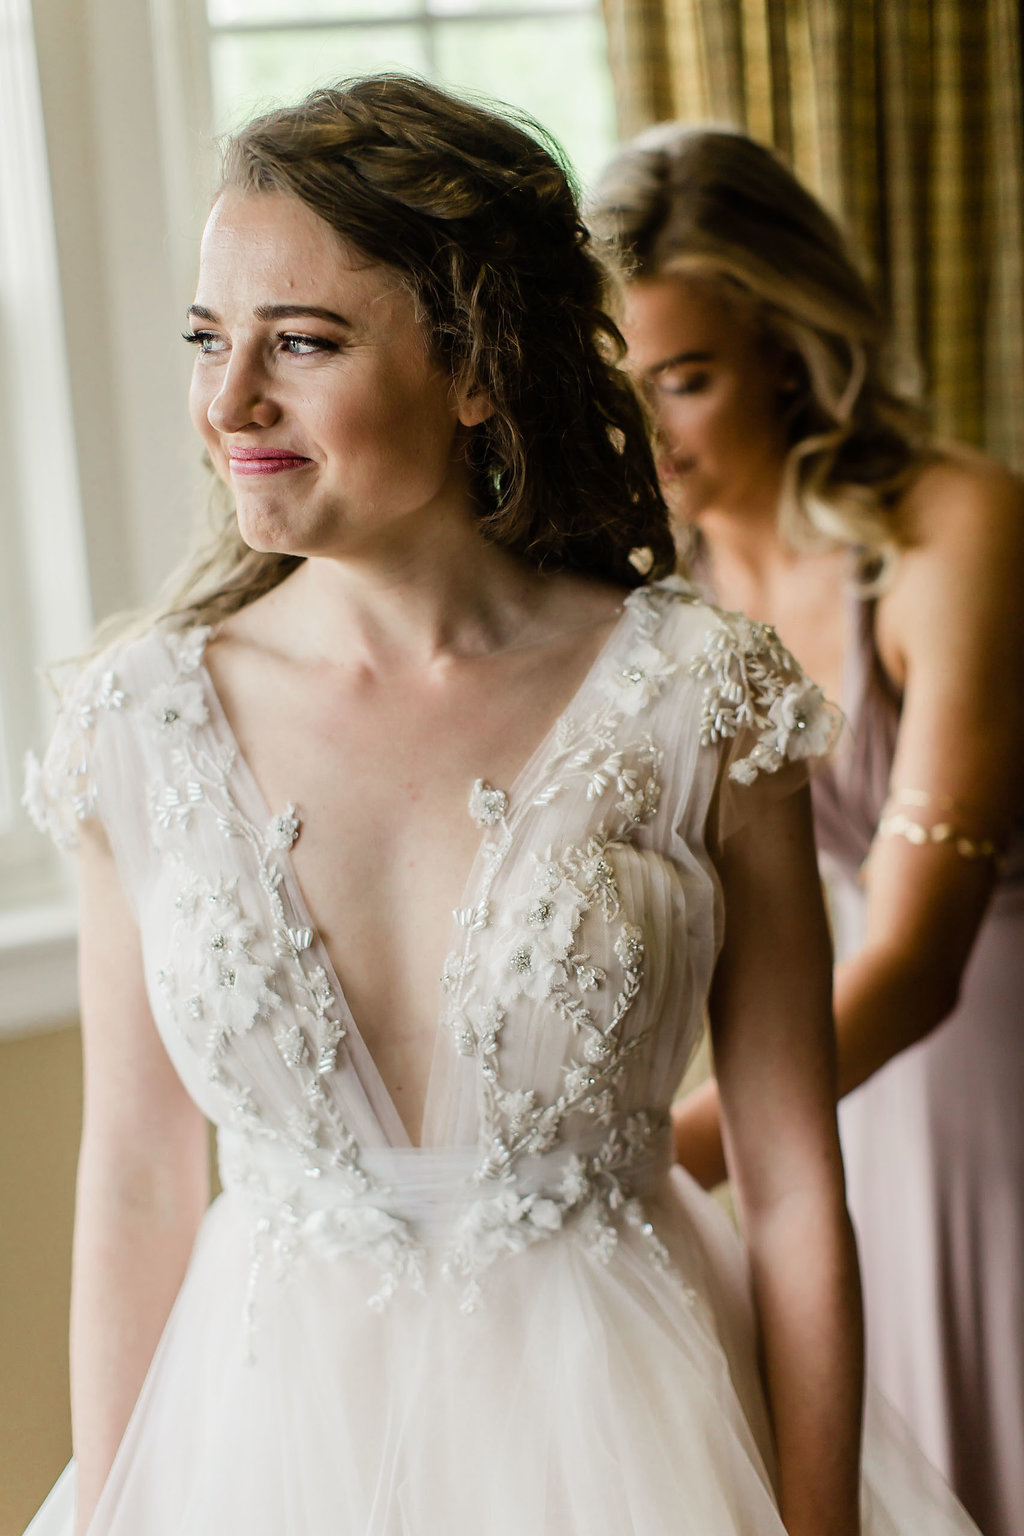 Elizabeth M Photography Washington DC Wedding Photographer Northern Virginia Maryland Destination Fine Art Elegant Engagement11